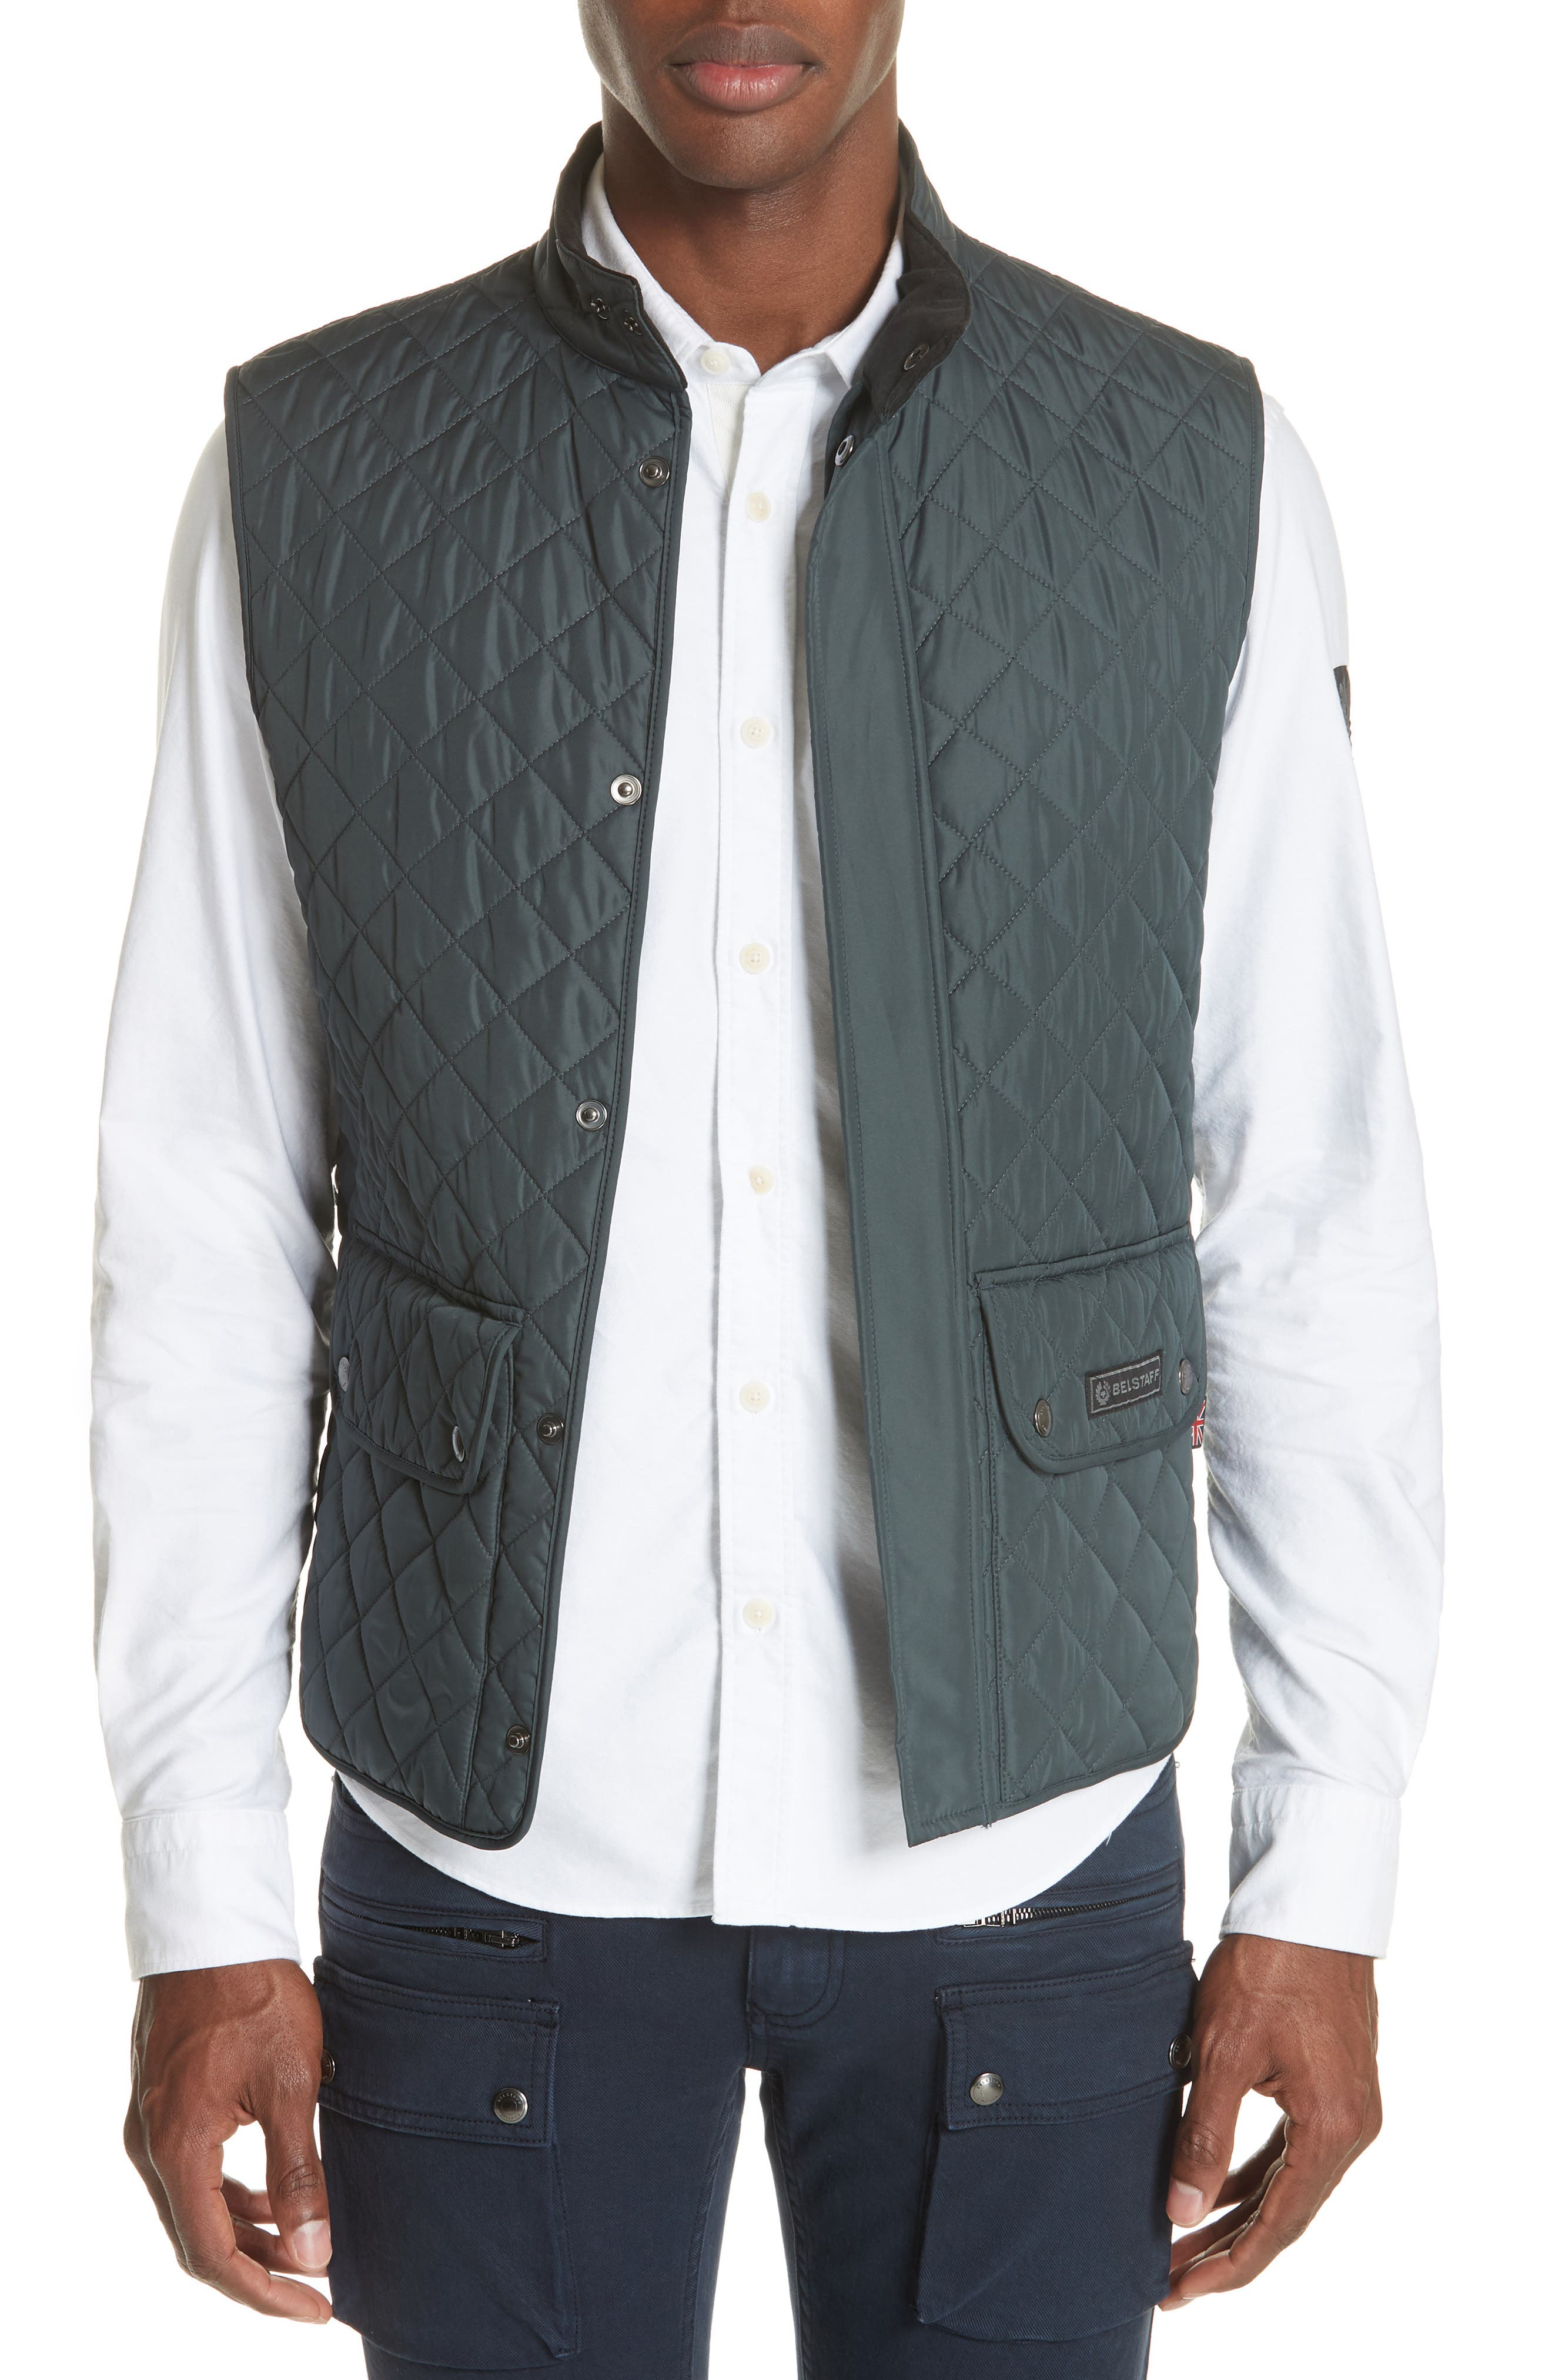 Waistcoat Tech Quilted Vest,                             Main thumbnail 1, color,                             400